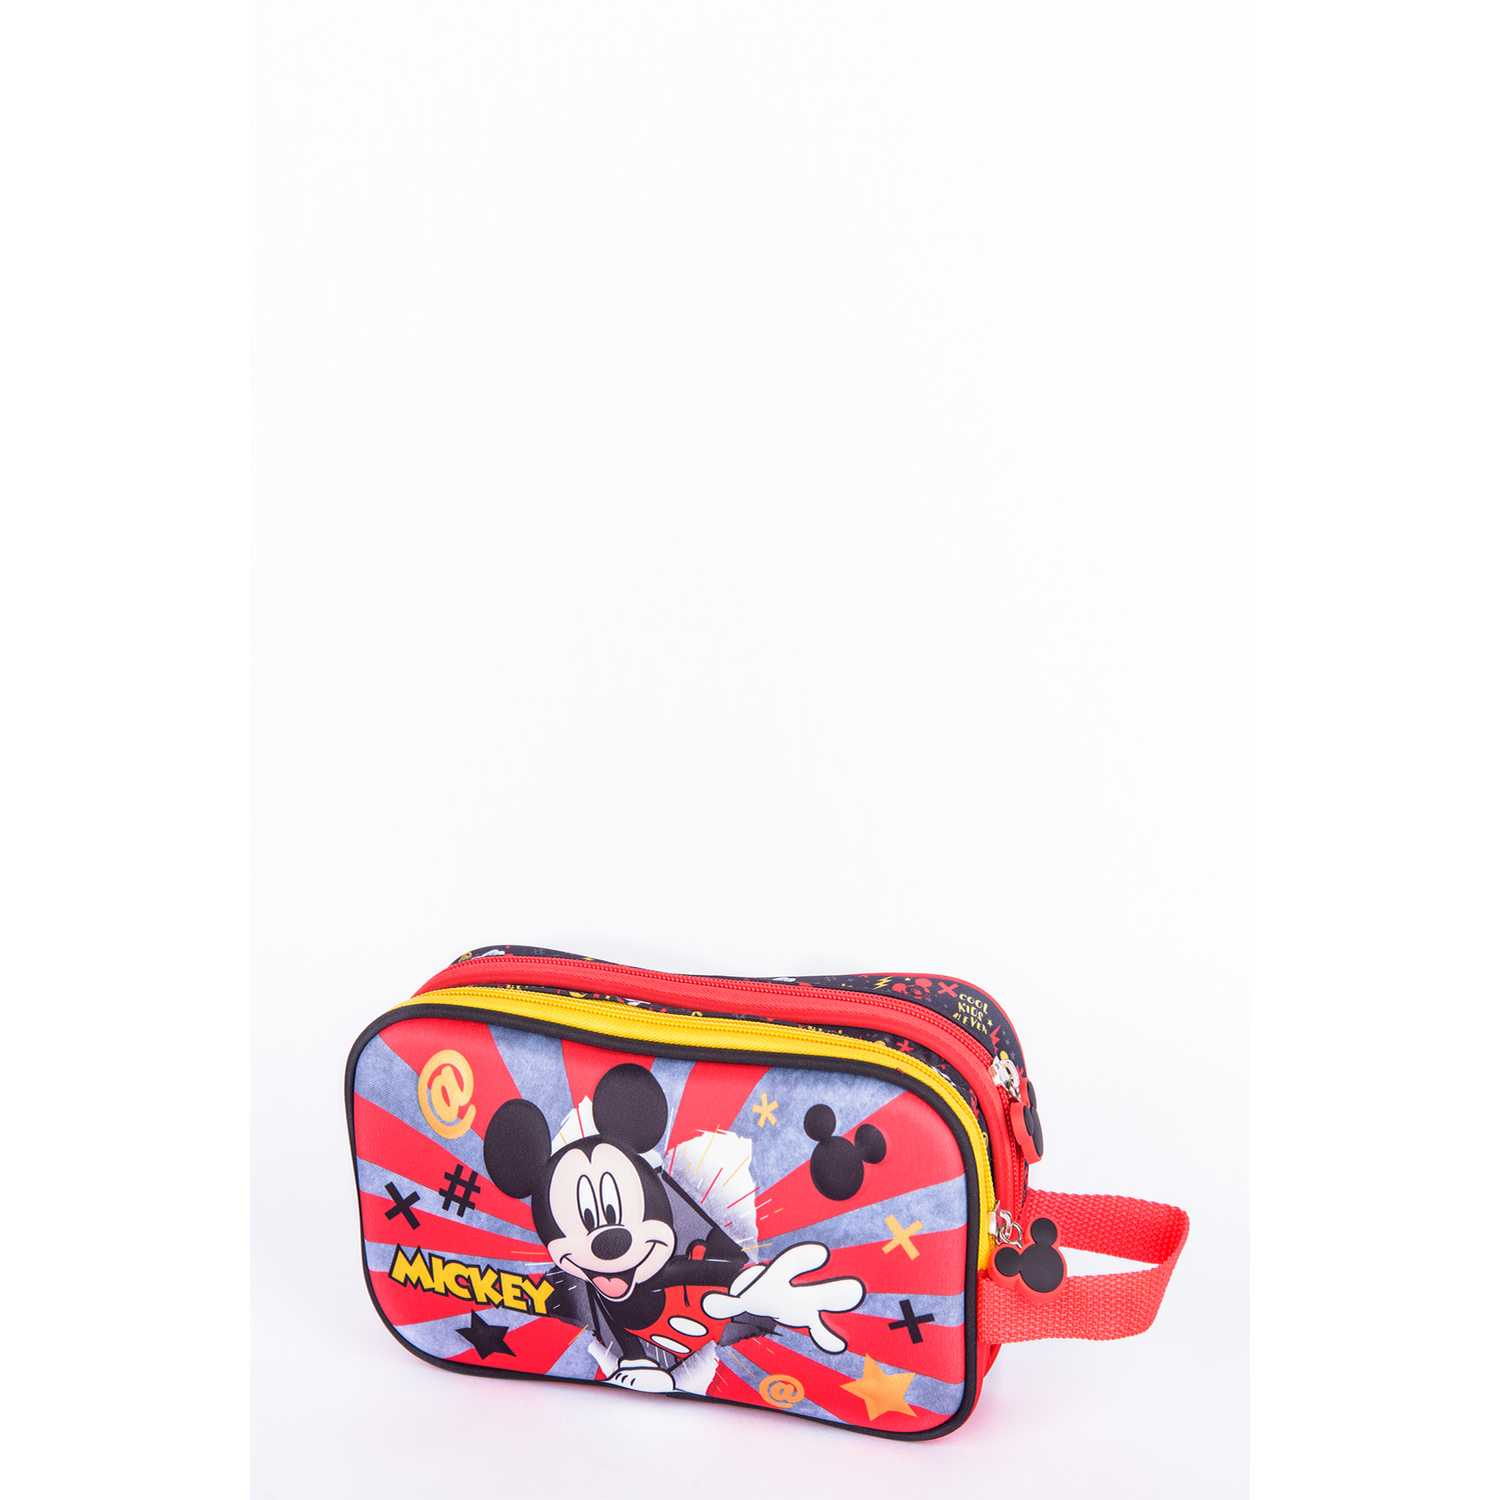 Cartuchera de Niño Scool Rojo / negro 9 scool mickey cart eva 3d d/cierre_a